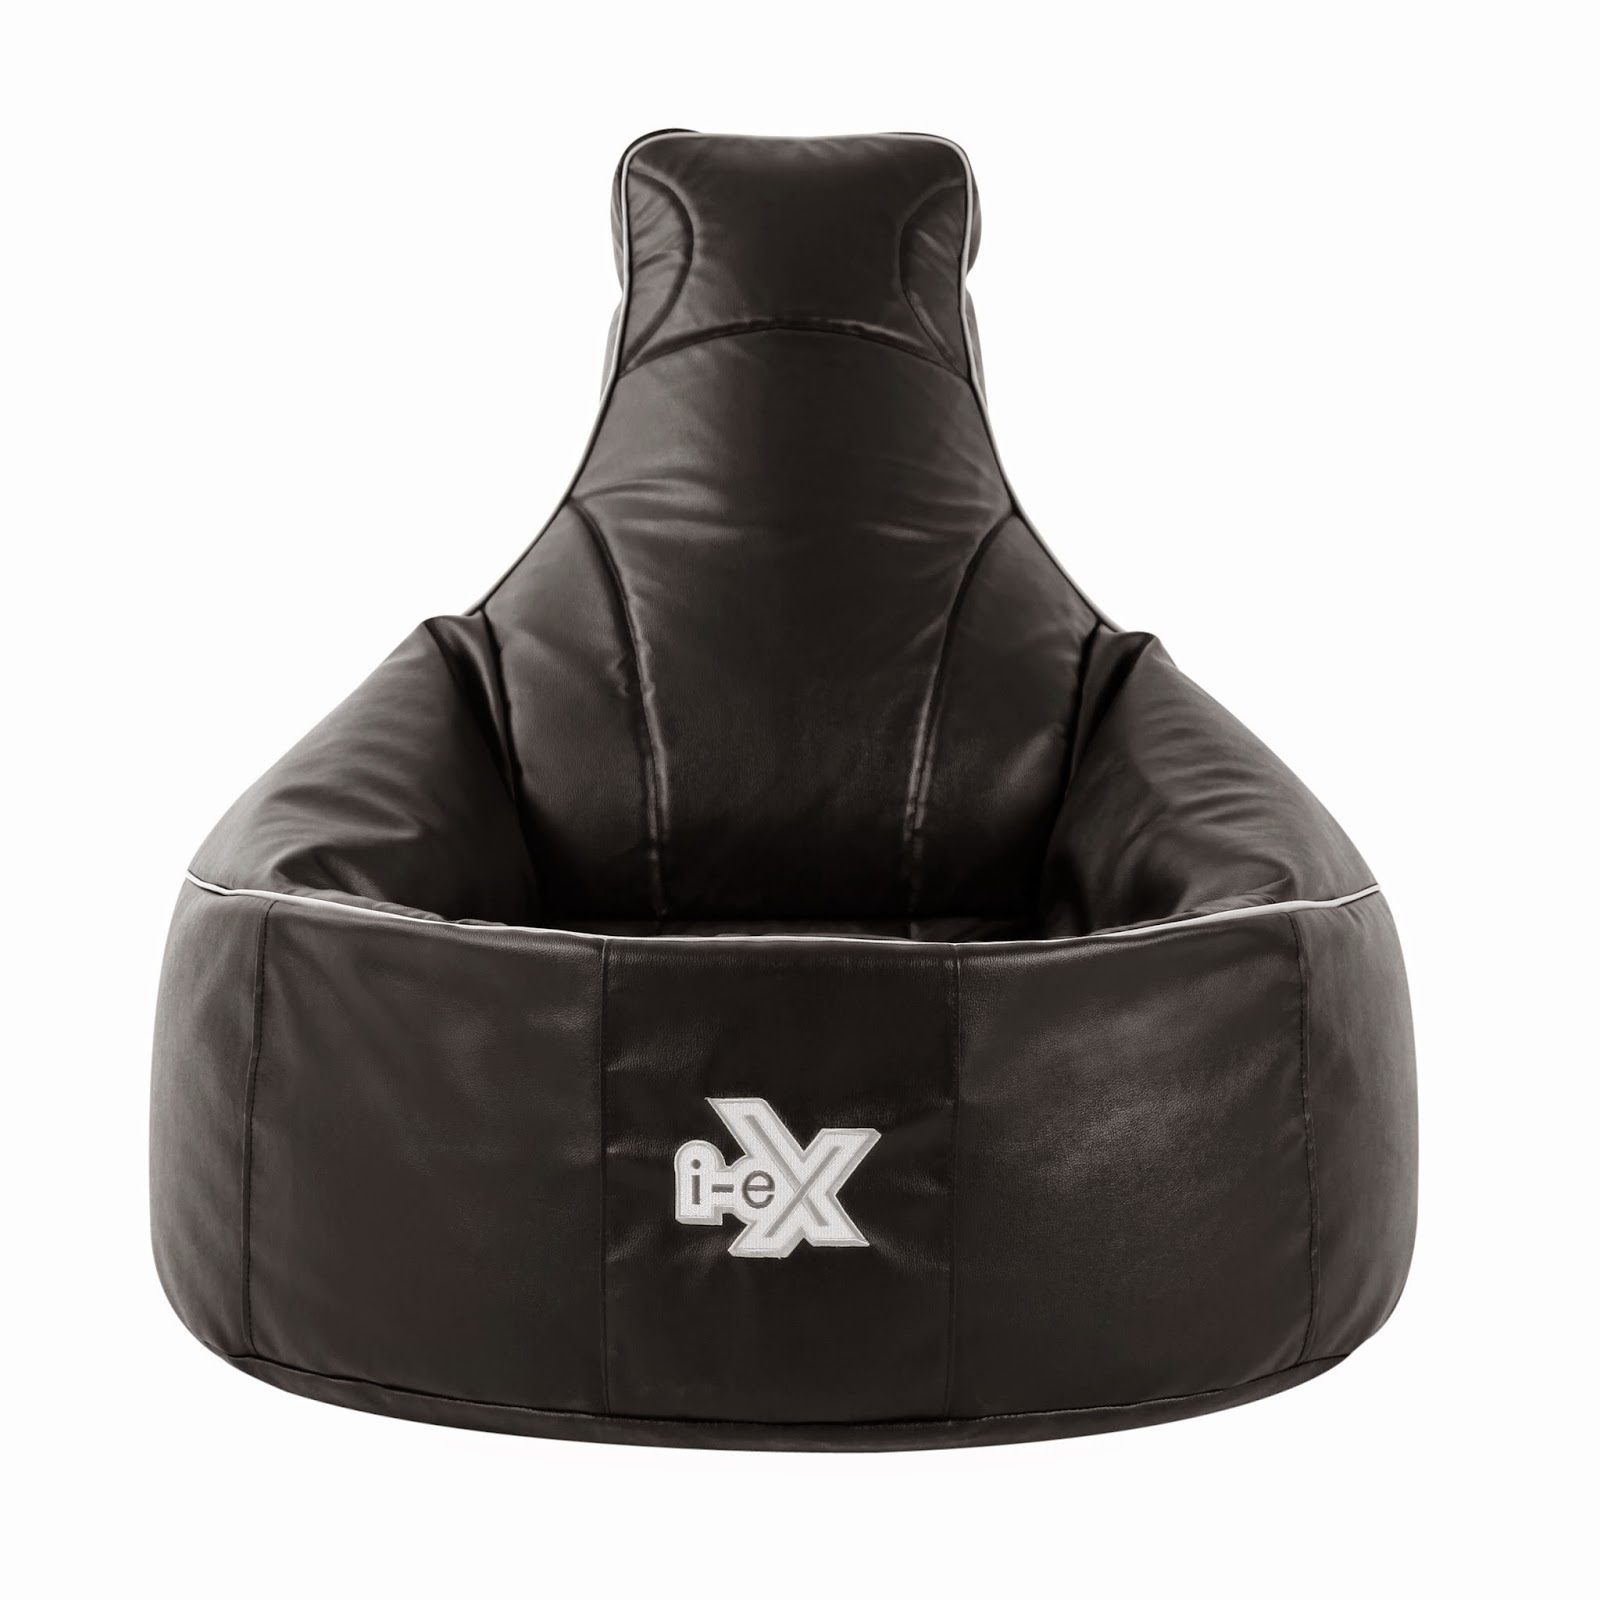 Review I Ex Bean Bag Gaming Chair The Test Pit